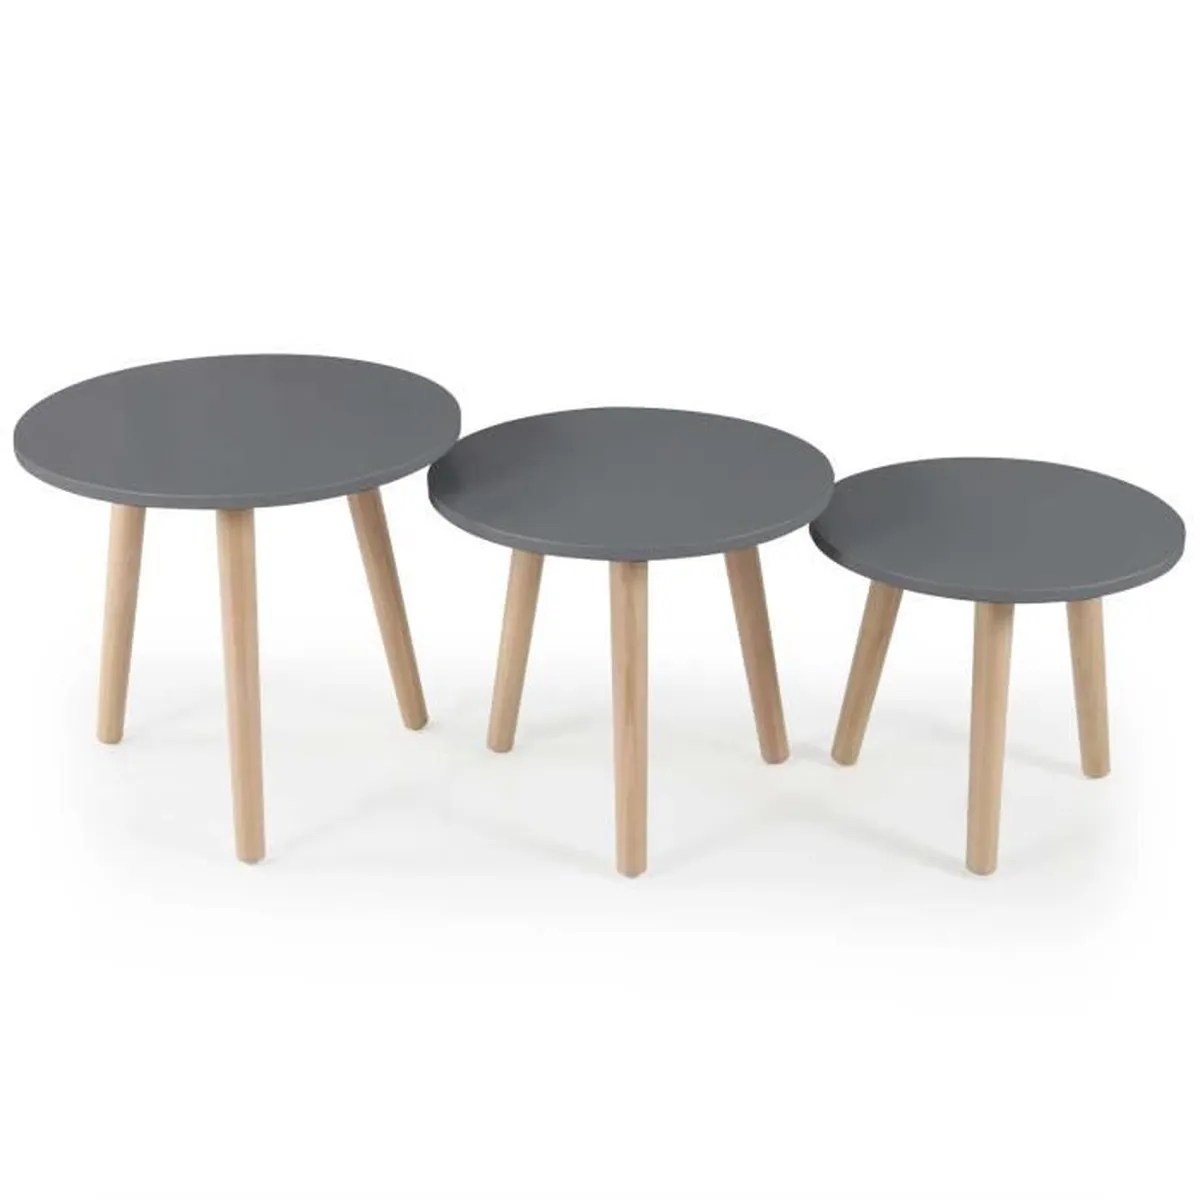 Table Avec Chaise Table A Manger Avec Chaises Lot De 3 Tables Dappoint Scandinaves